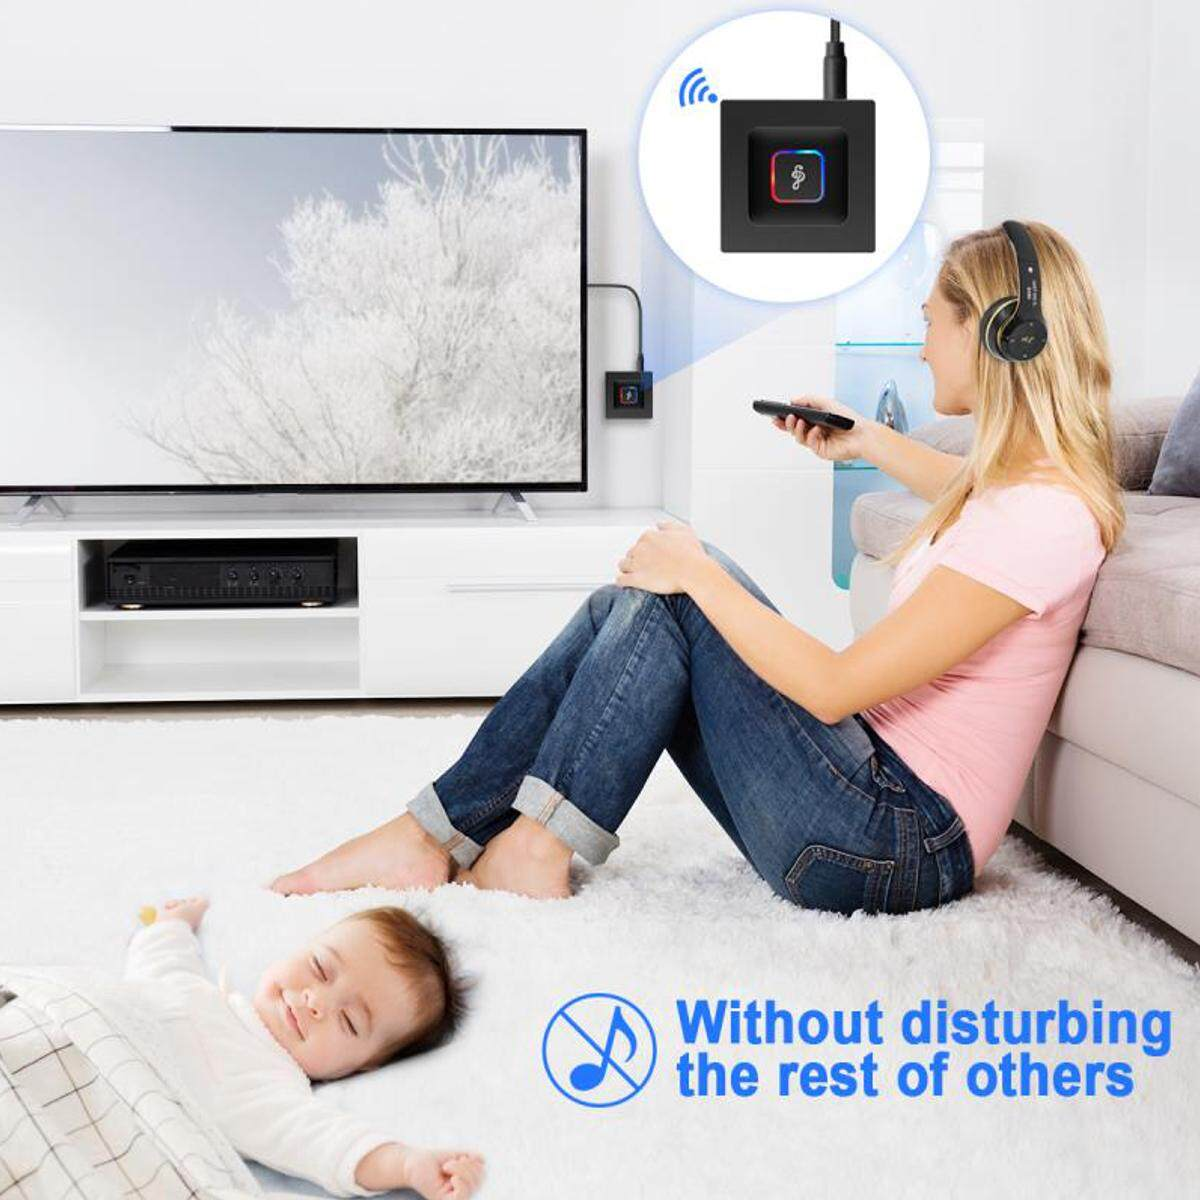 【Free Shipping + Flash Deal】2in 1 Bluetooth 4.2 Transmitter & Receiver Wireless A2DP for TV Stereo Audio Adapter